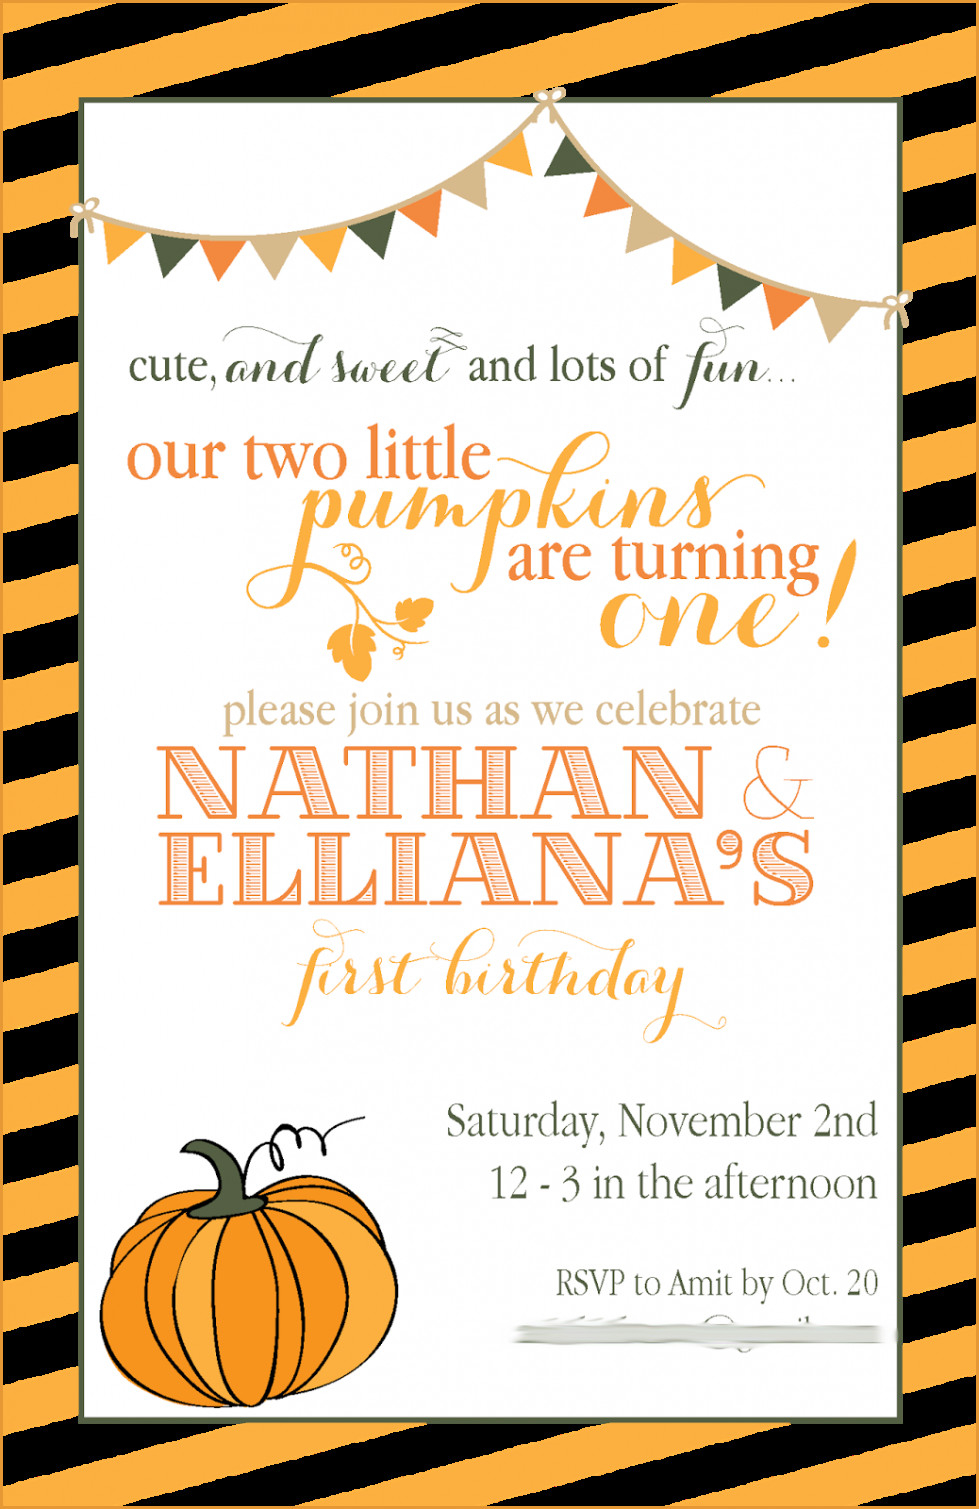 Party Invitations: Appealing Fall Party Invitations Ideas Fall Party - Free Printable Fall Festival Invitations